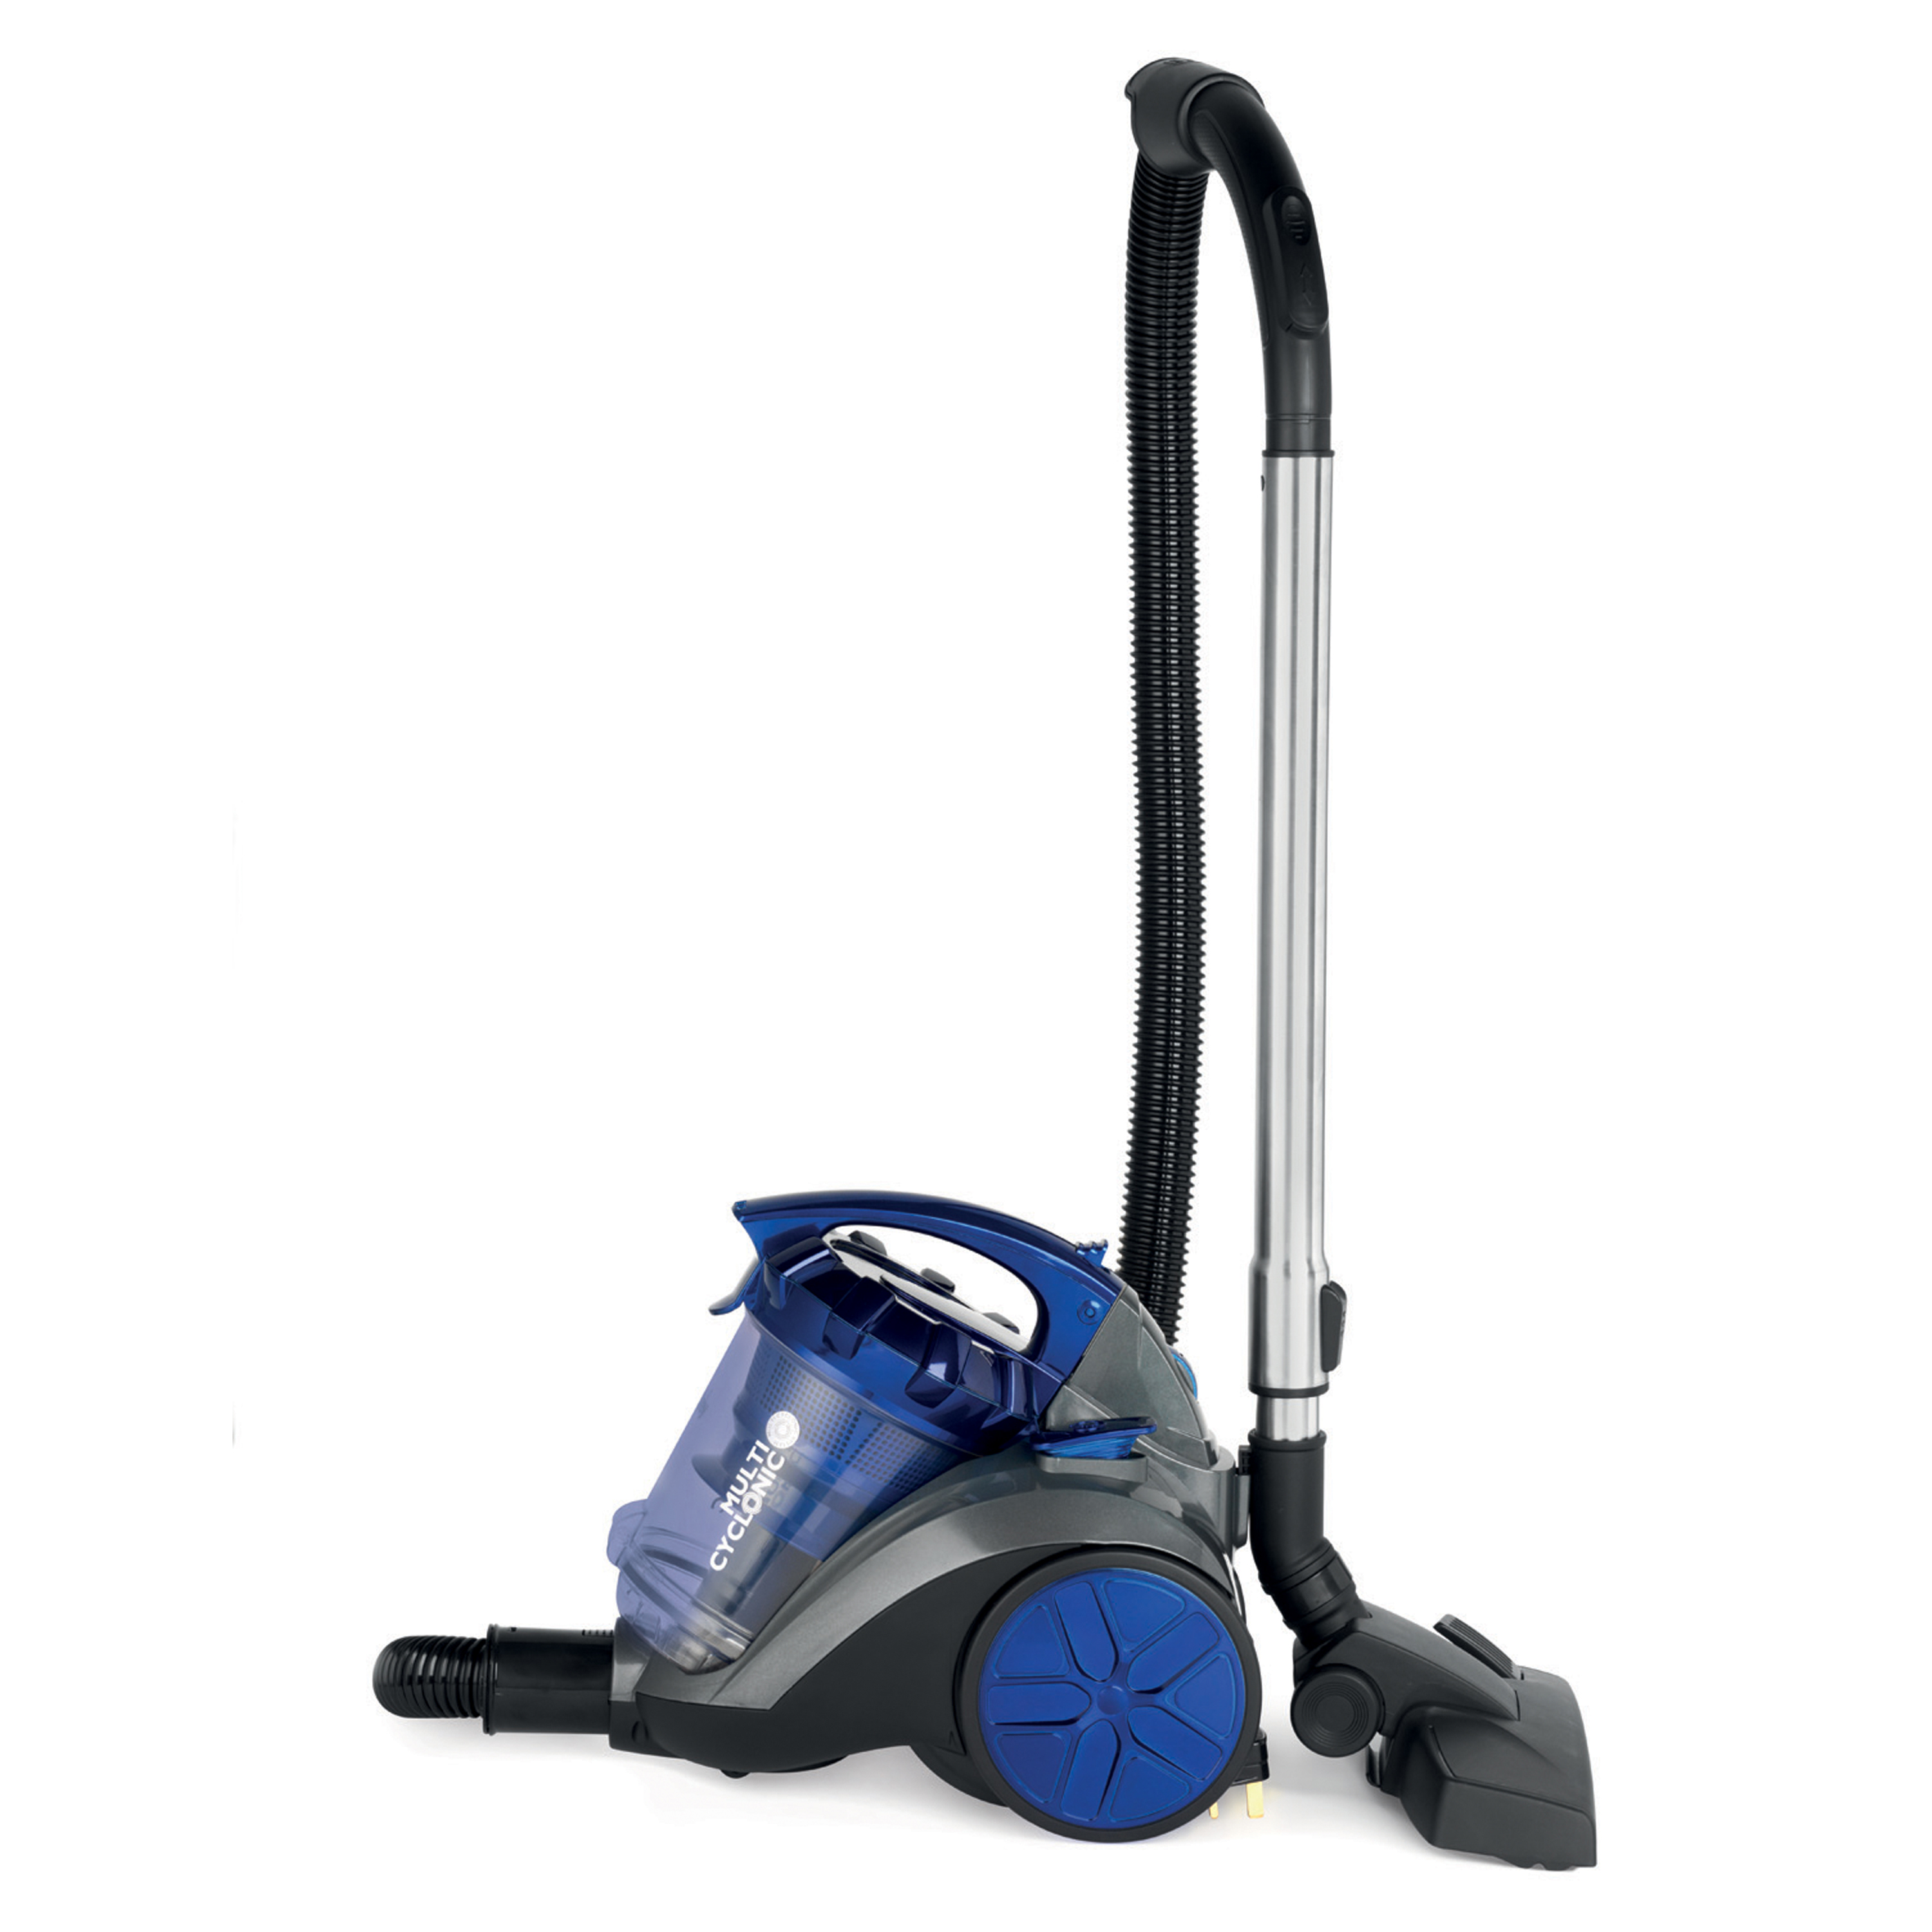 Beldray Multicyclonic Cylinder Vacuum Cleaner 2 Litre